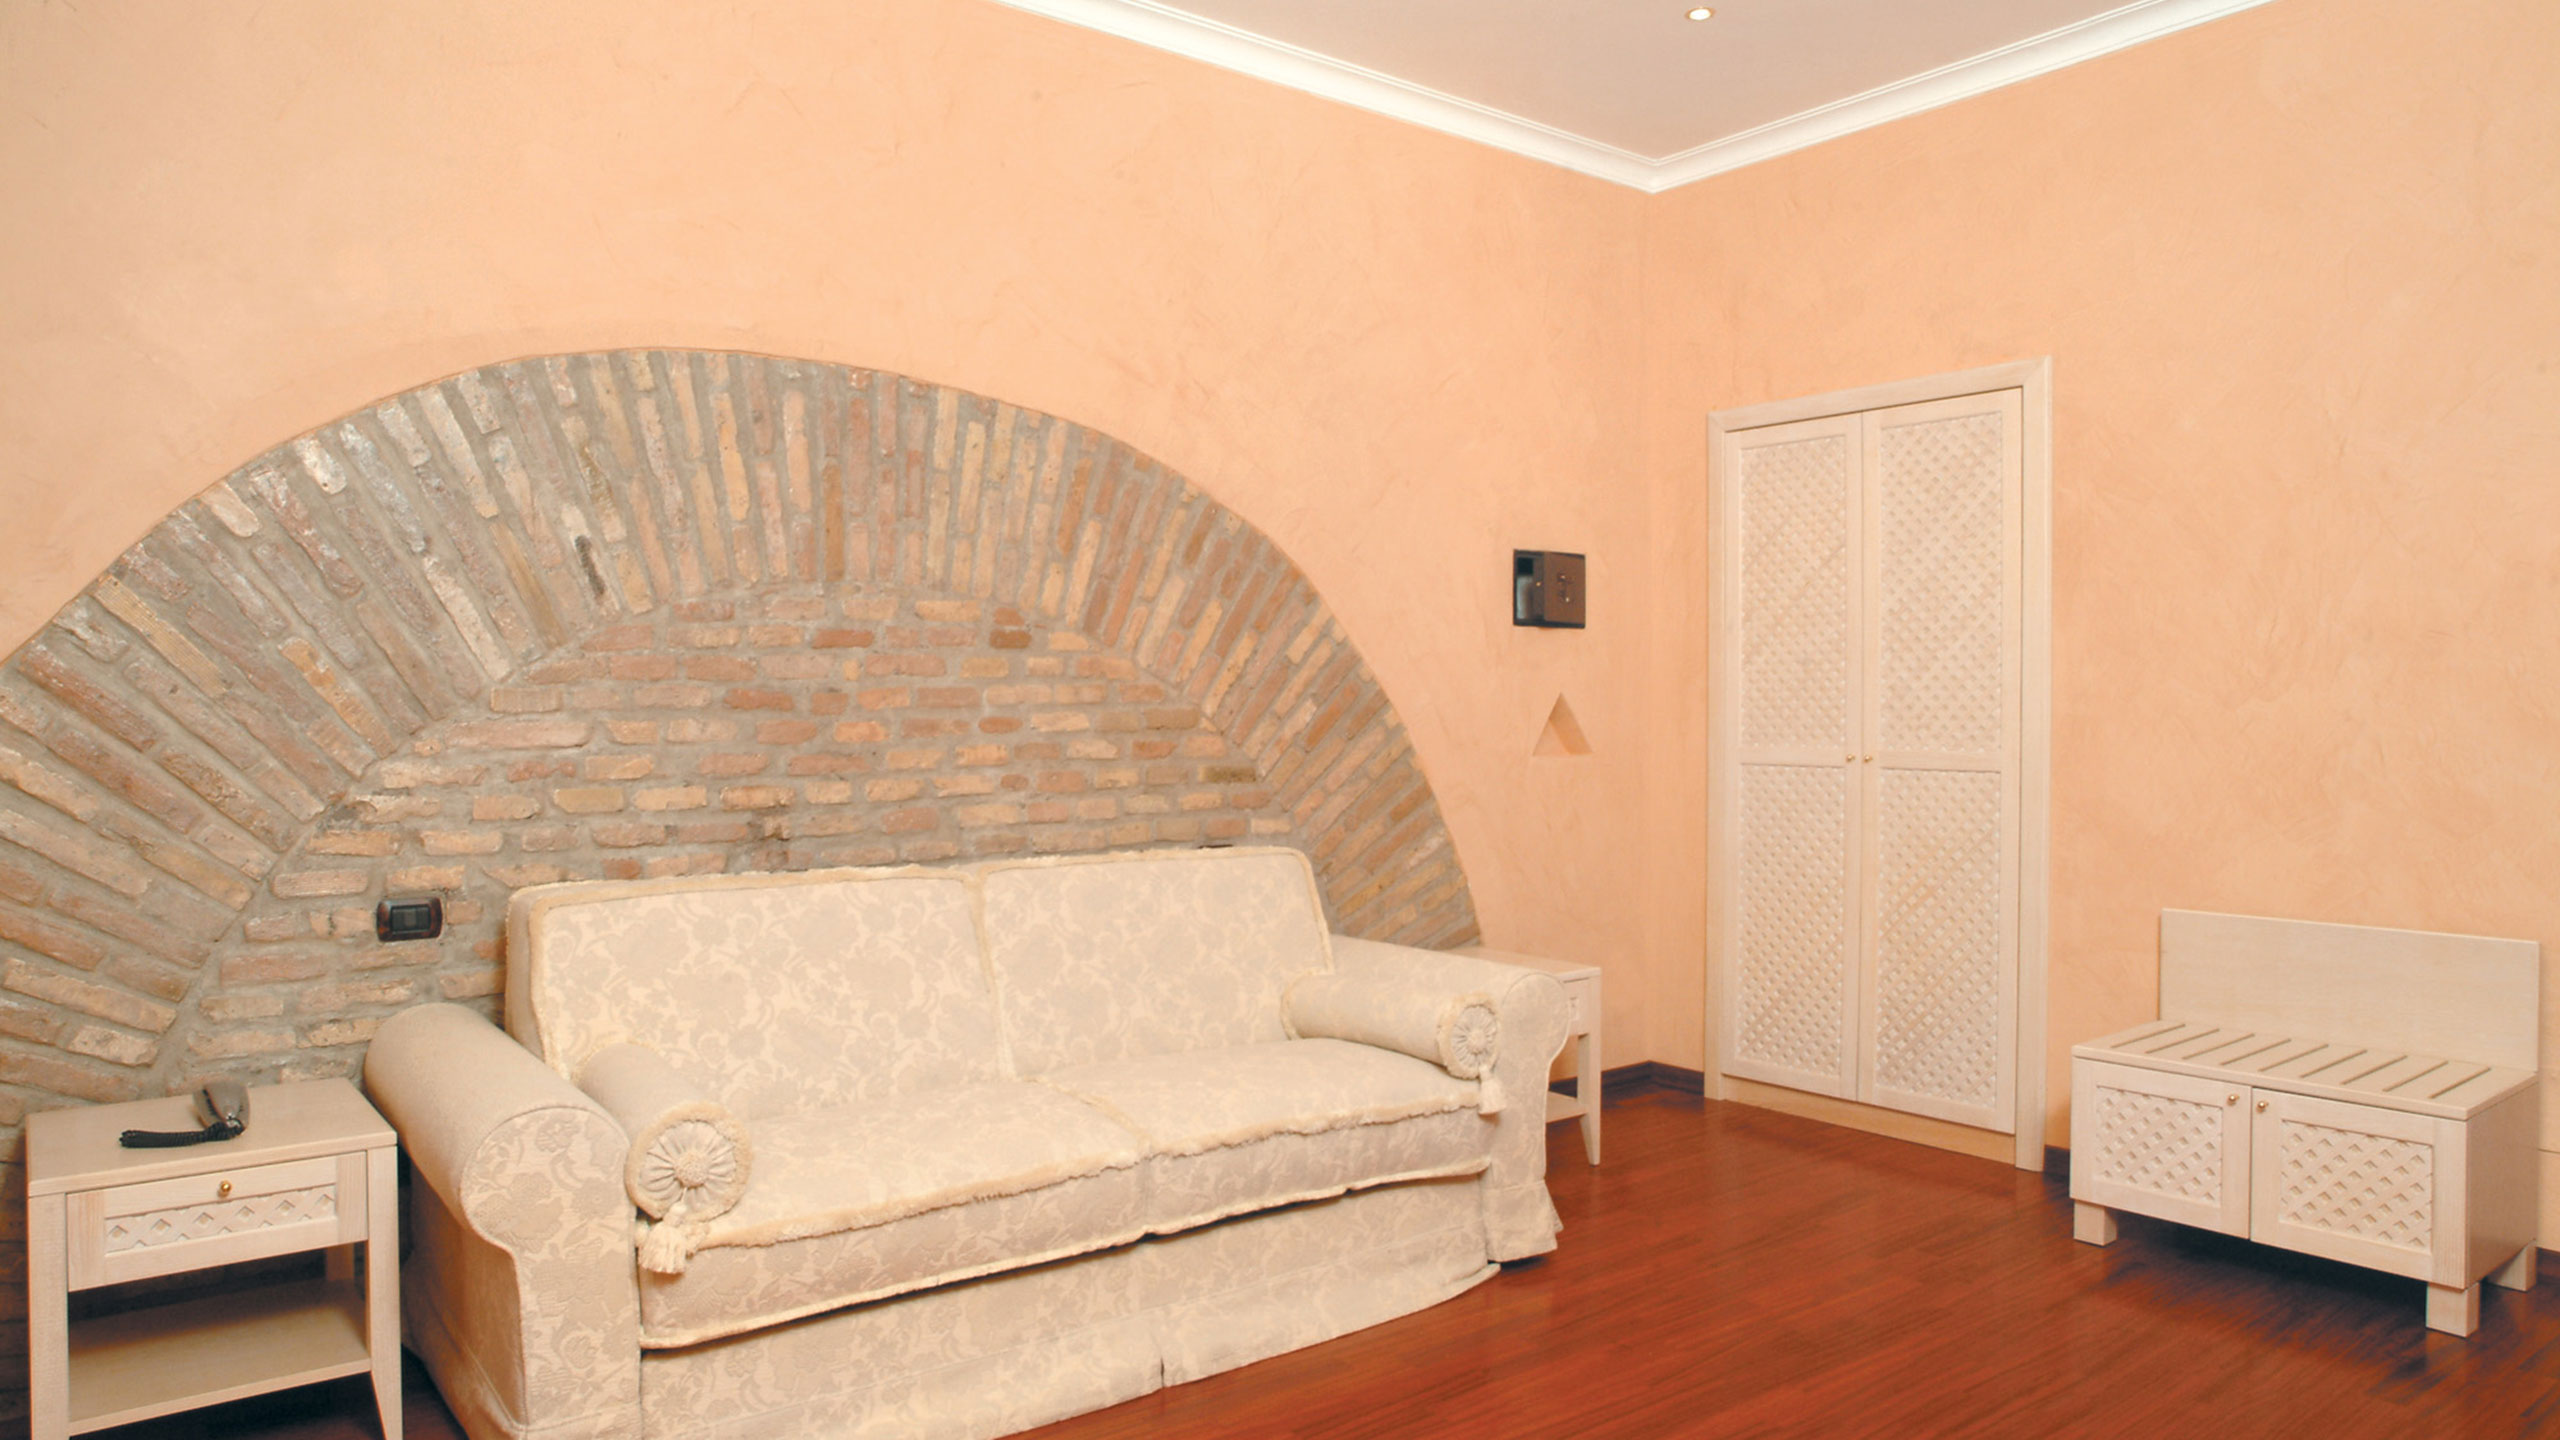 colosseo-suites-roma-camere-05